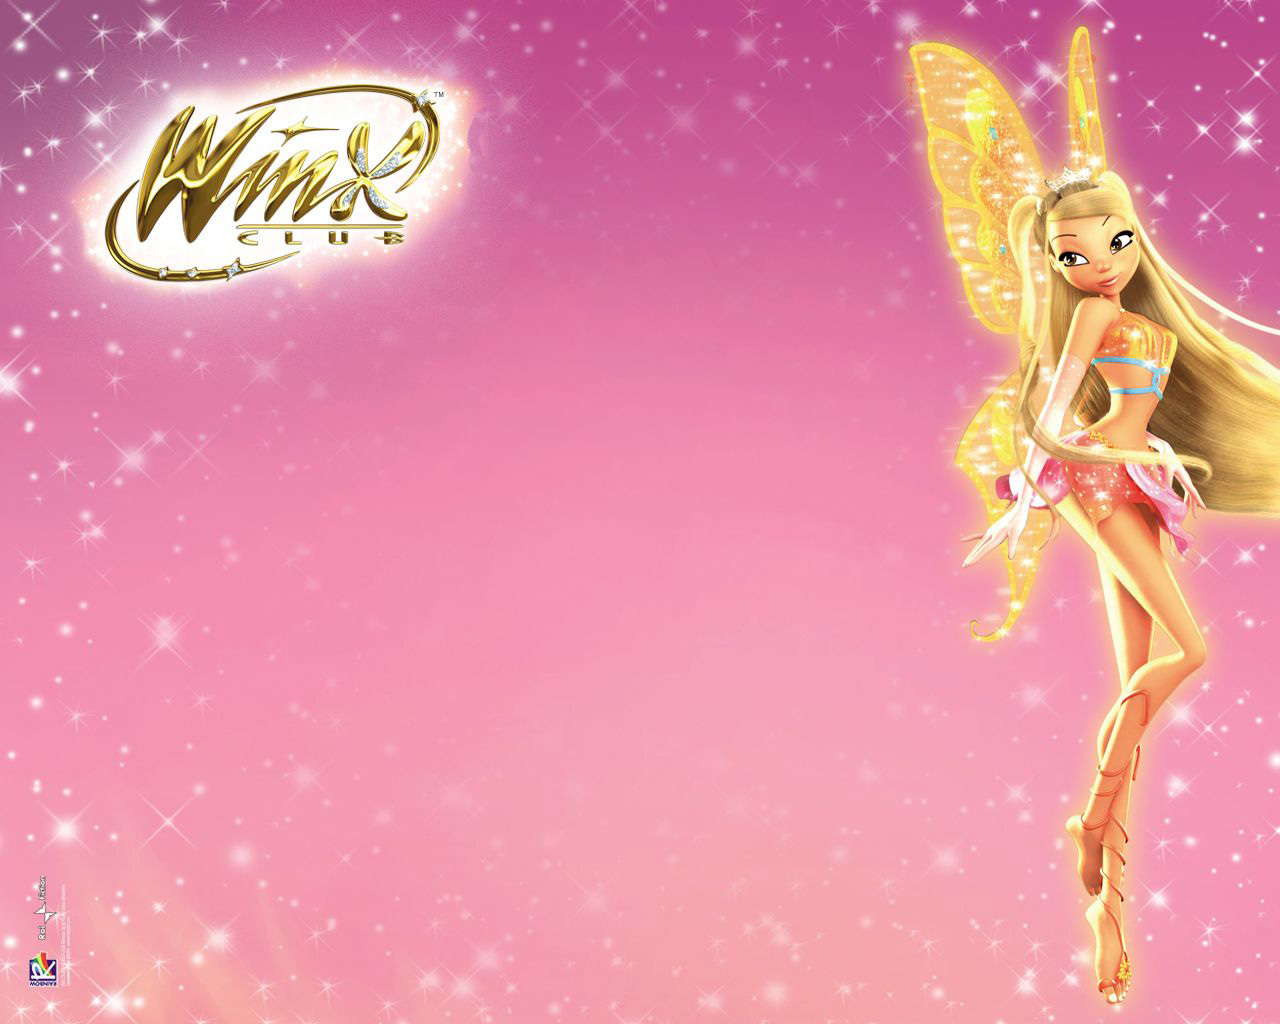 the winx images the winx club wallpaper 15474365